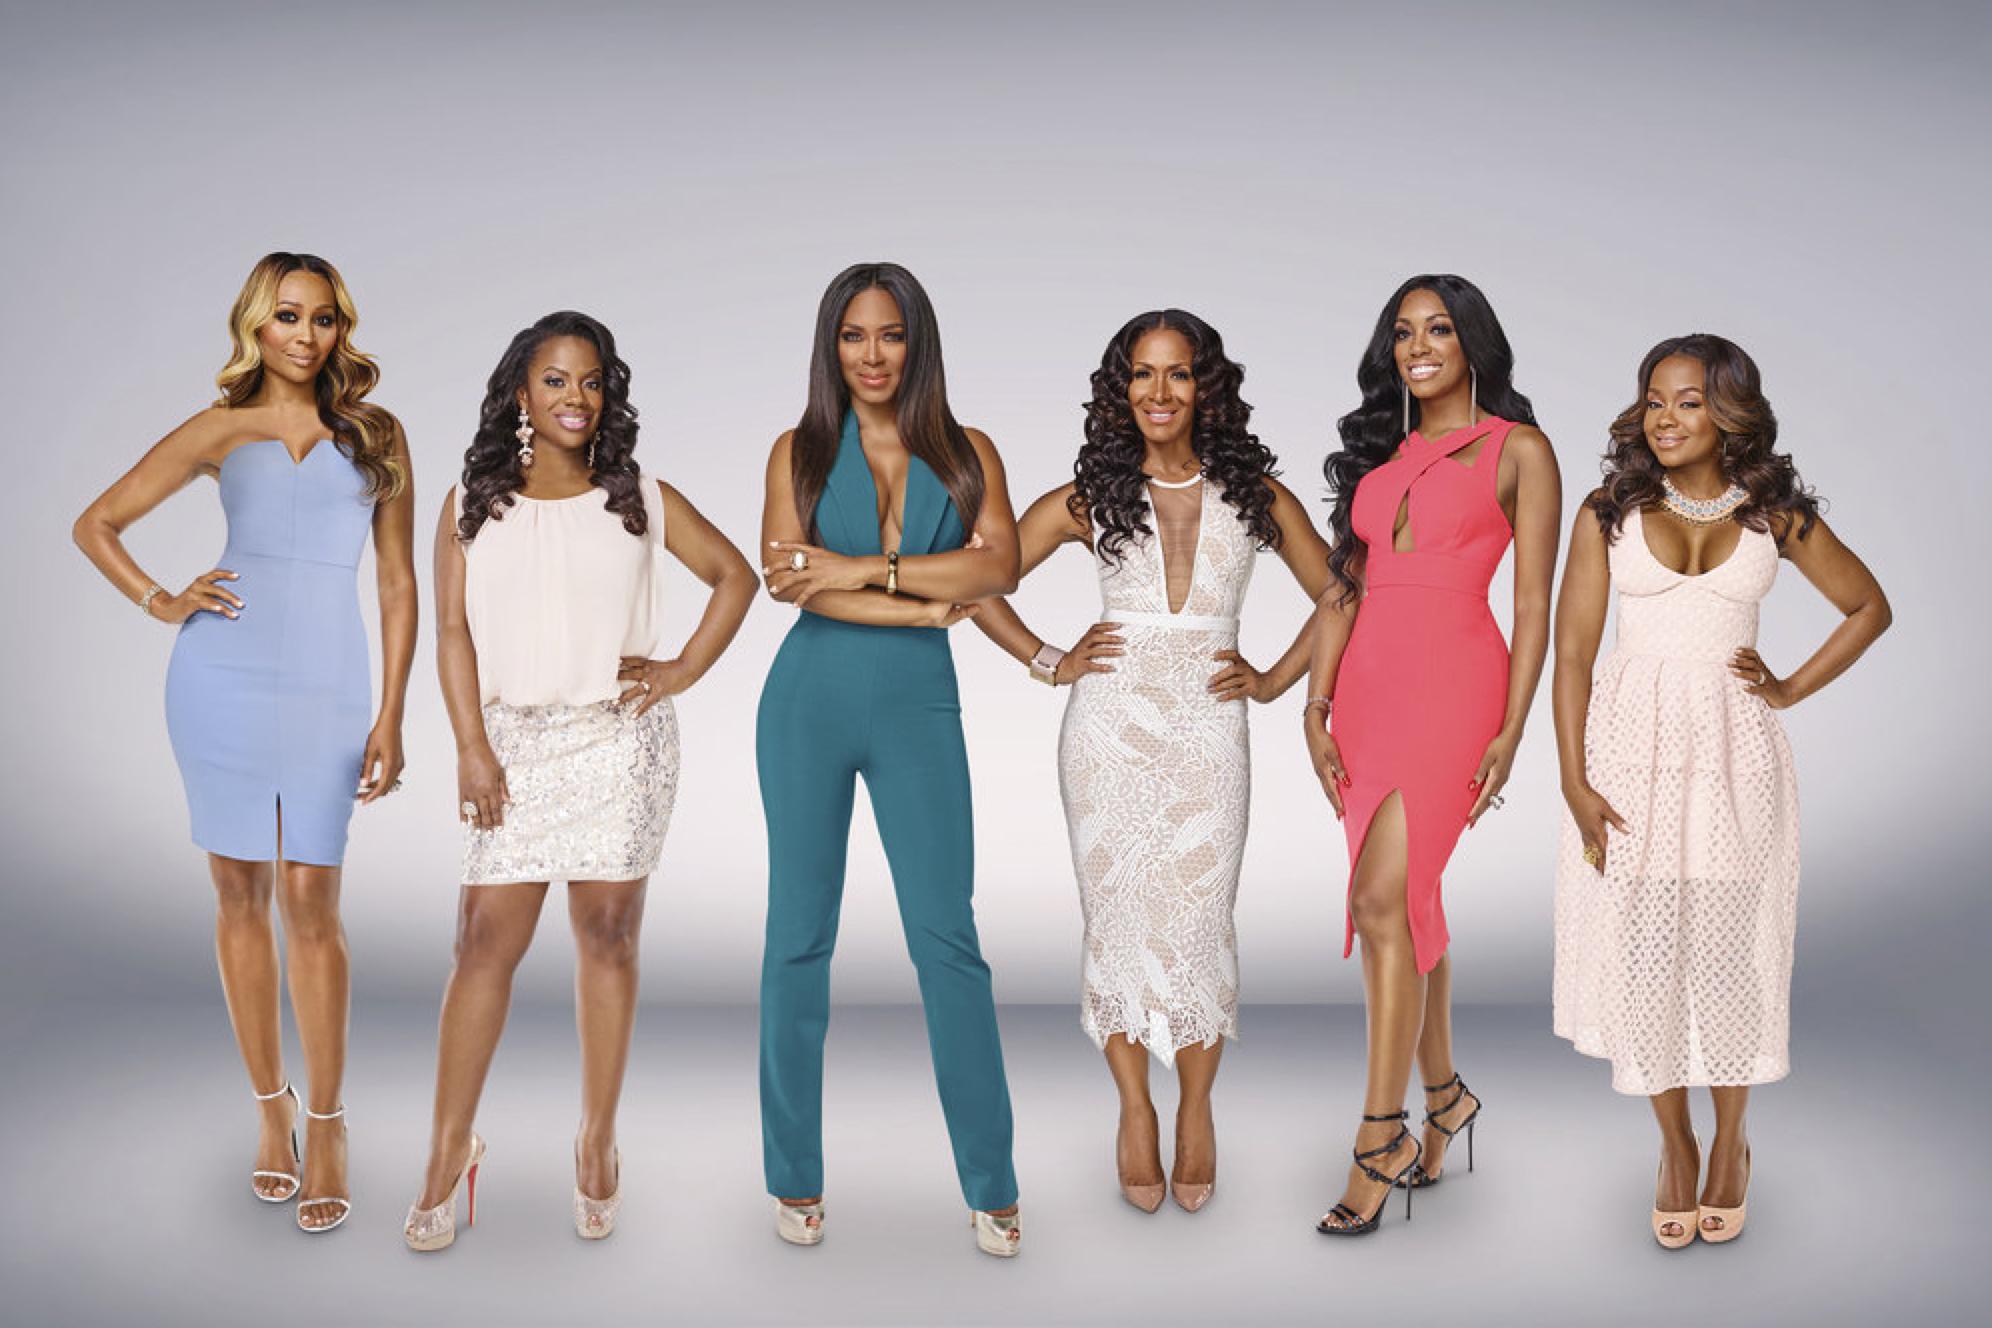 THE REAL HOUSEWIVES OF ATLANTA -- Season:9 -- Pictured: (l-r) Cynthia Bailey, Kandi Burruss, Kenya Moore, Sheree Whitfield, Porsha Williams, Phaedra Parks -- (Photo by: Mark Hill/Bravo)